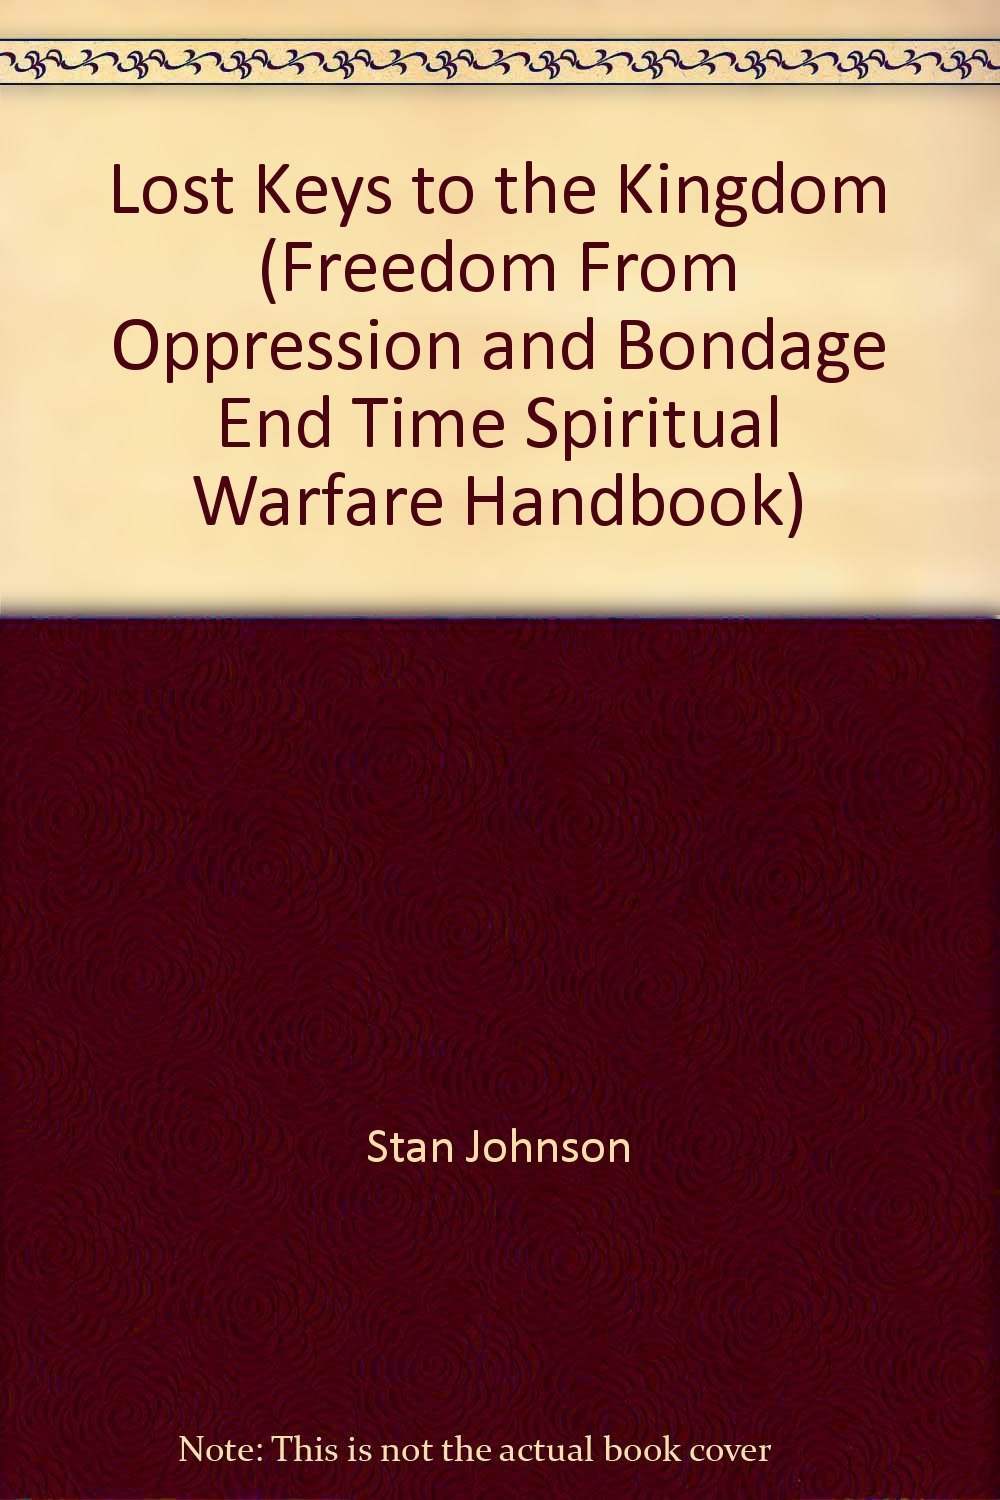 Lost Keys to the Kingdom (Freedom From Oppression and Bondage End Time Spiritual Warfare Handbook) Text fb2 book